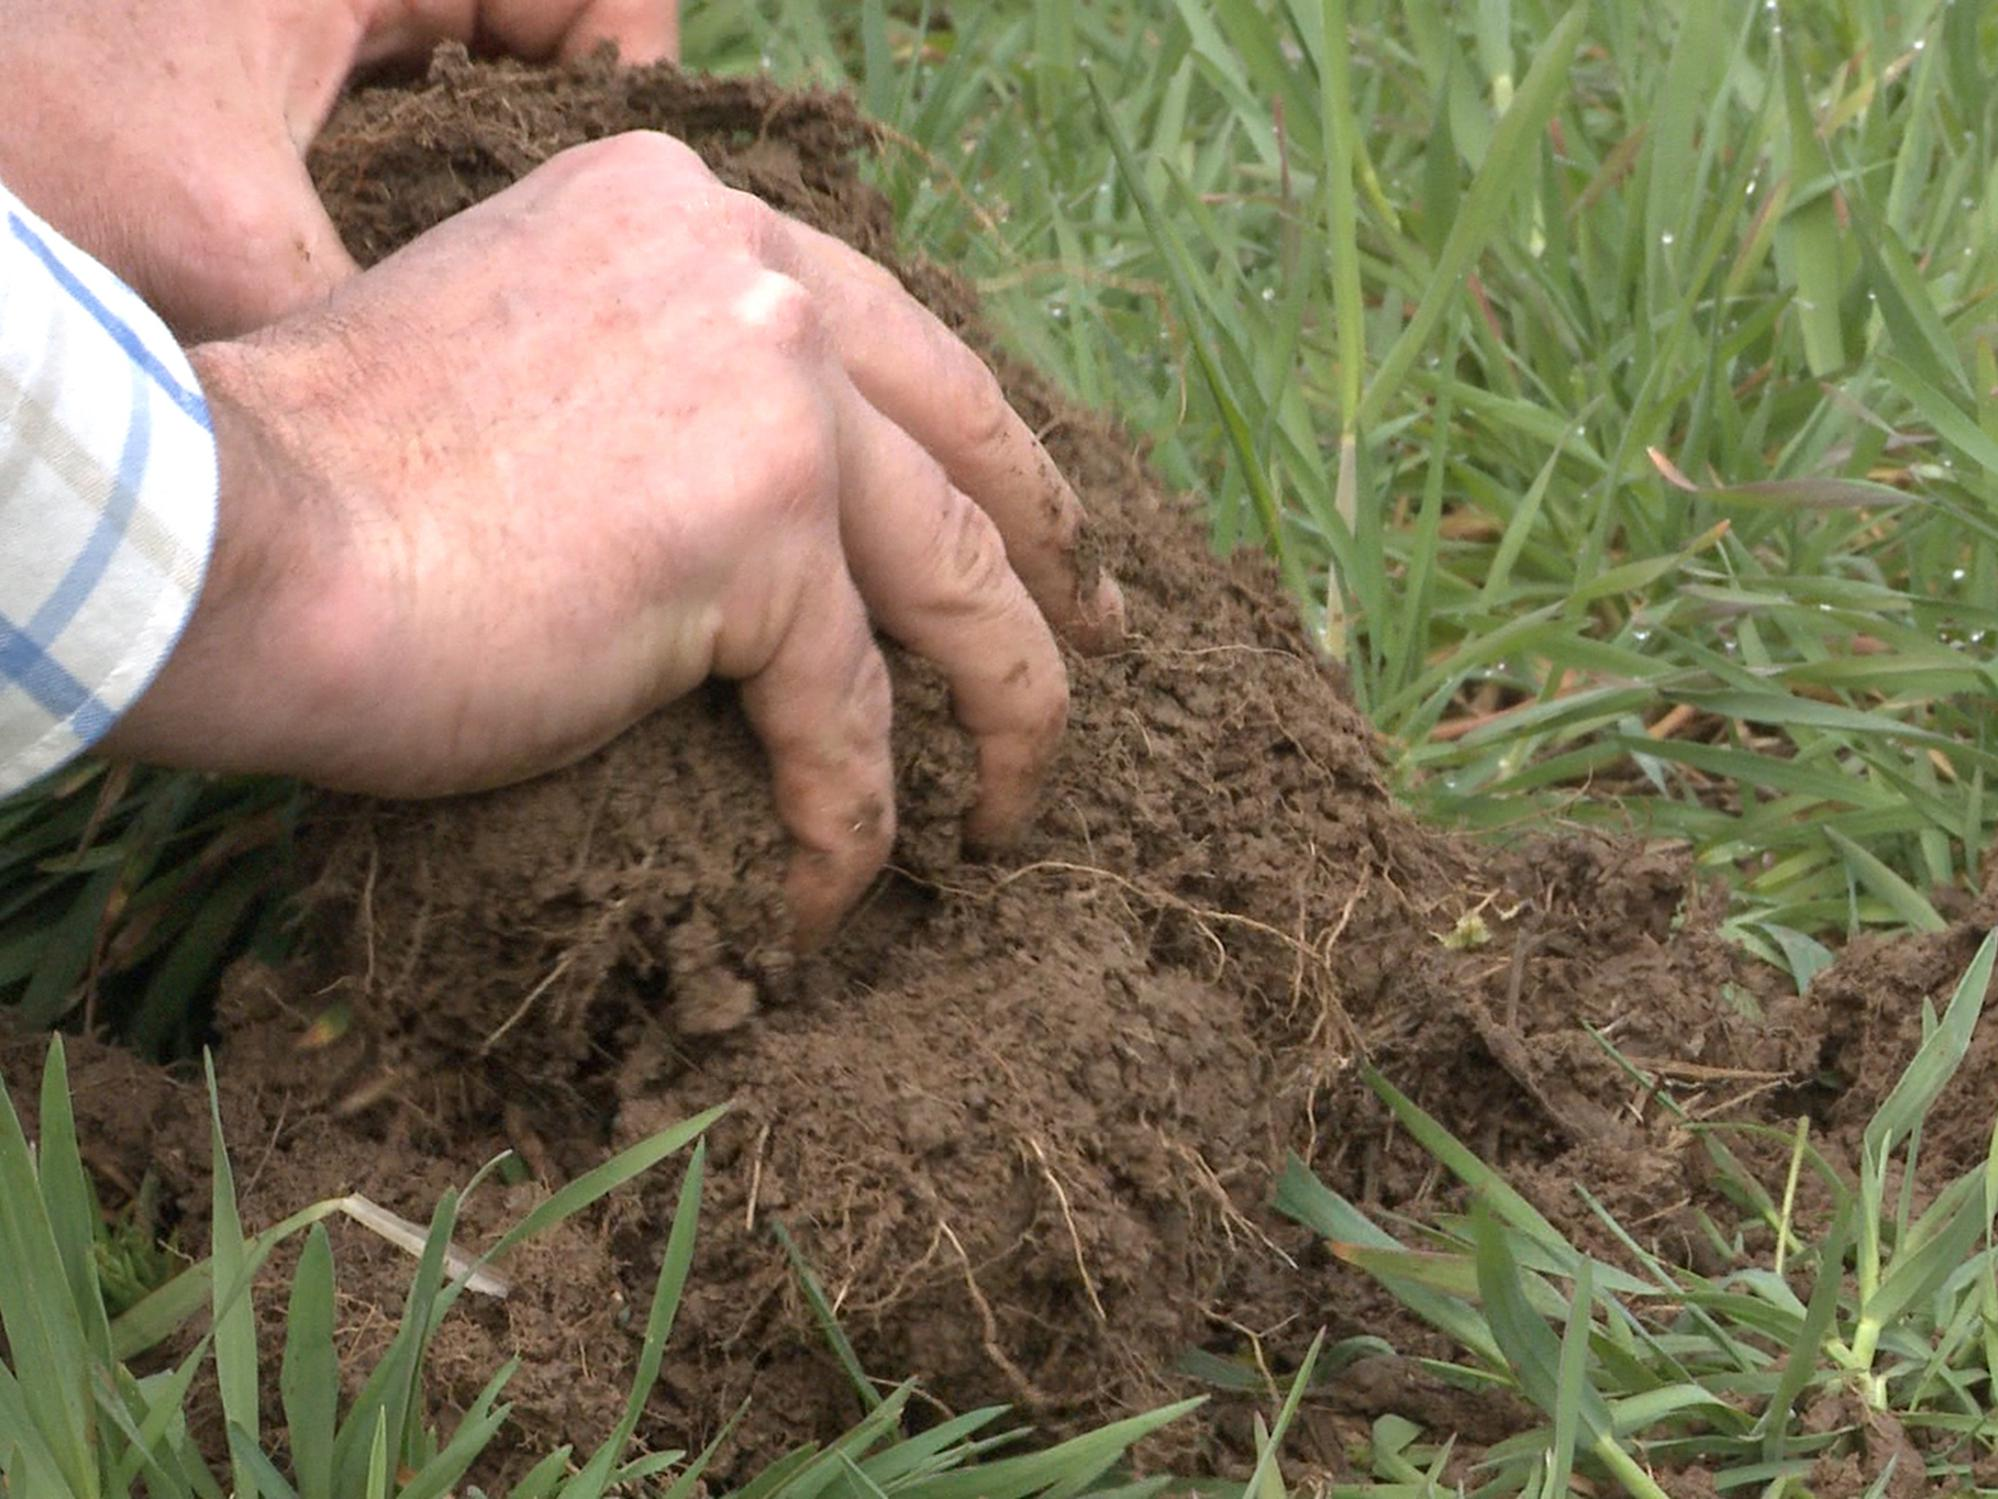 A pair of hands pull rich soil from the ground with green grass around it.